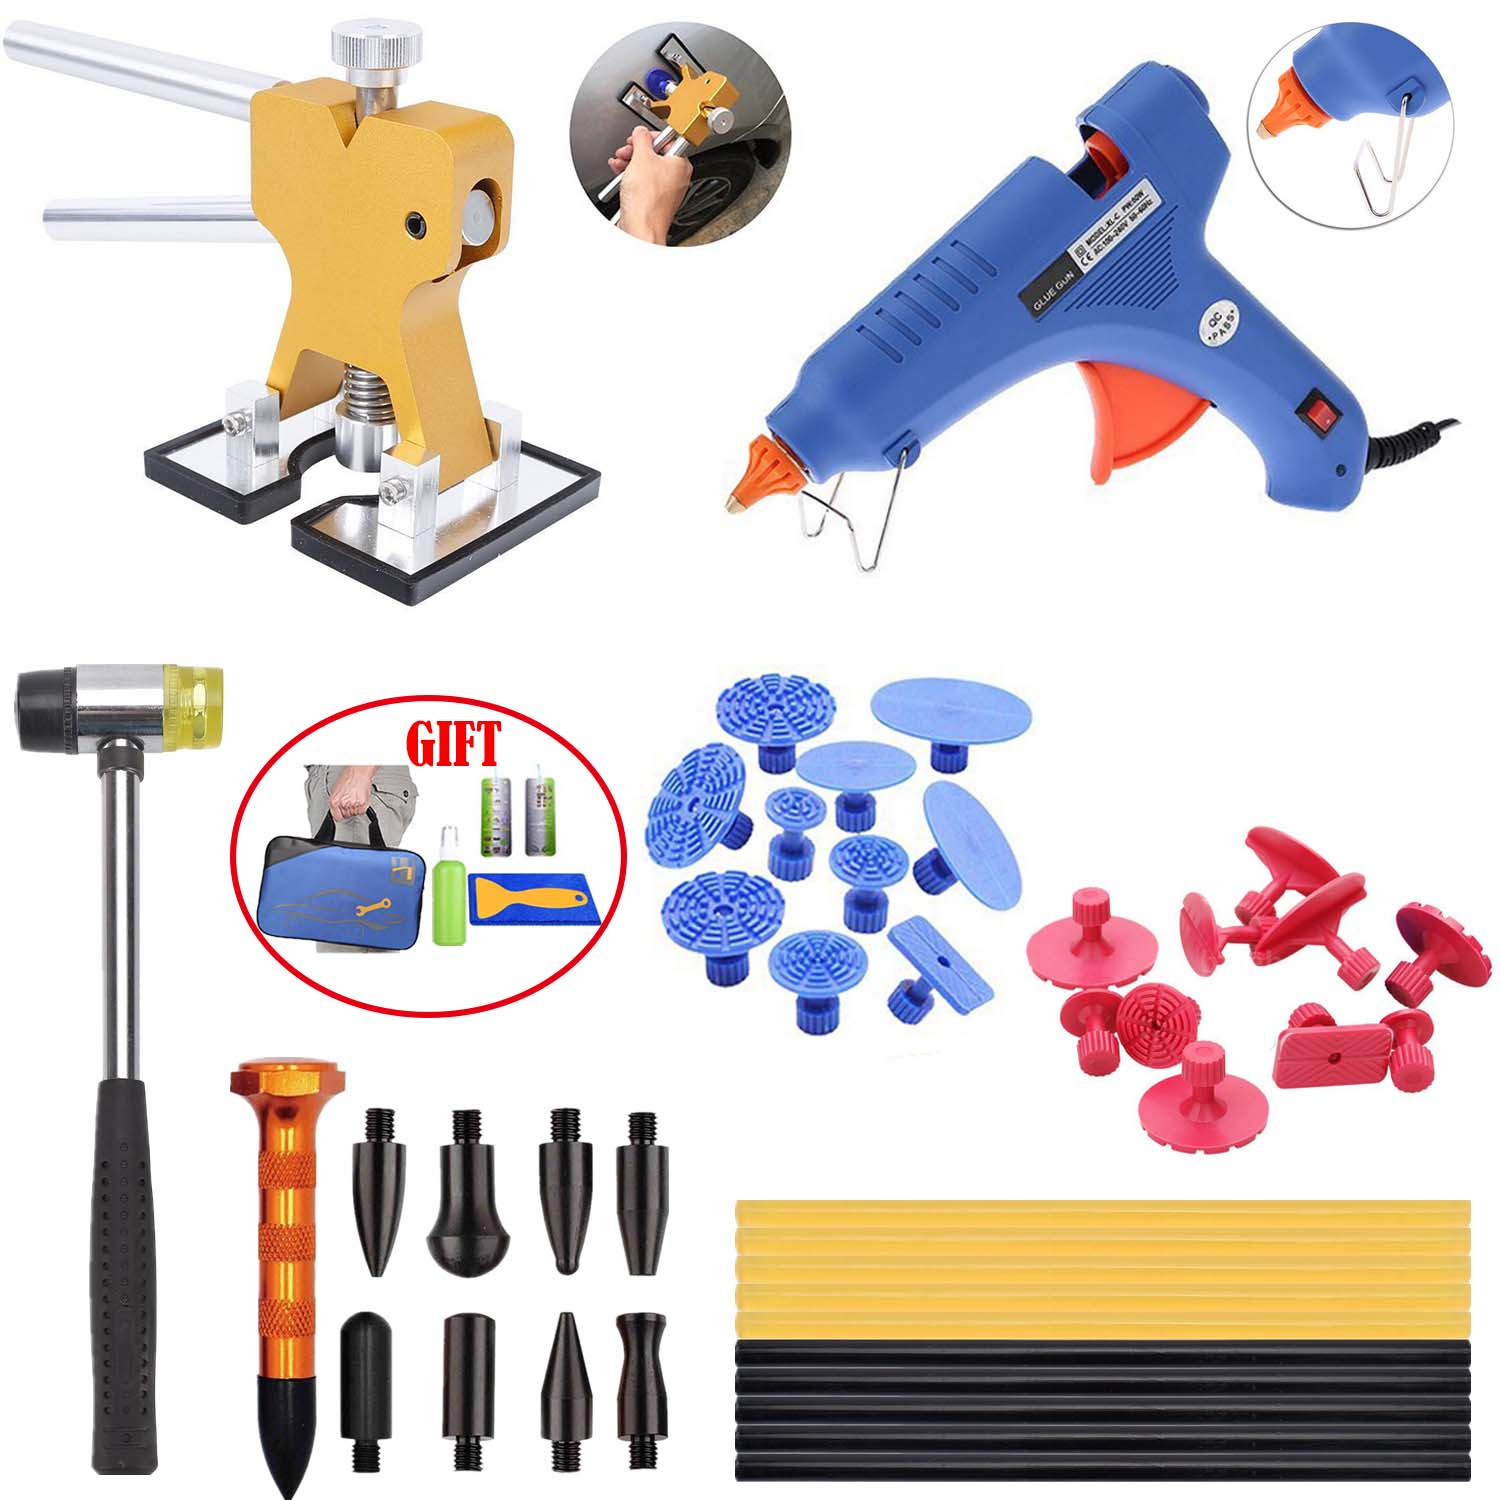 Paintless Dent Repair Tool Dent Puller Kit Pops a Dent Car Dent Removal Kit Golden Lifter Glue Gun for Automobile Body Motorcycle Refrigerator Washer